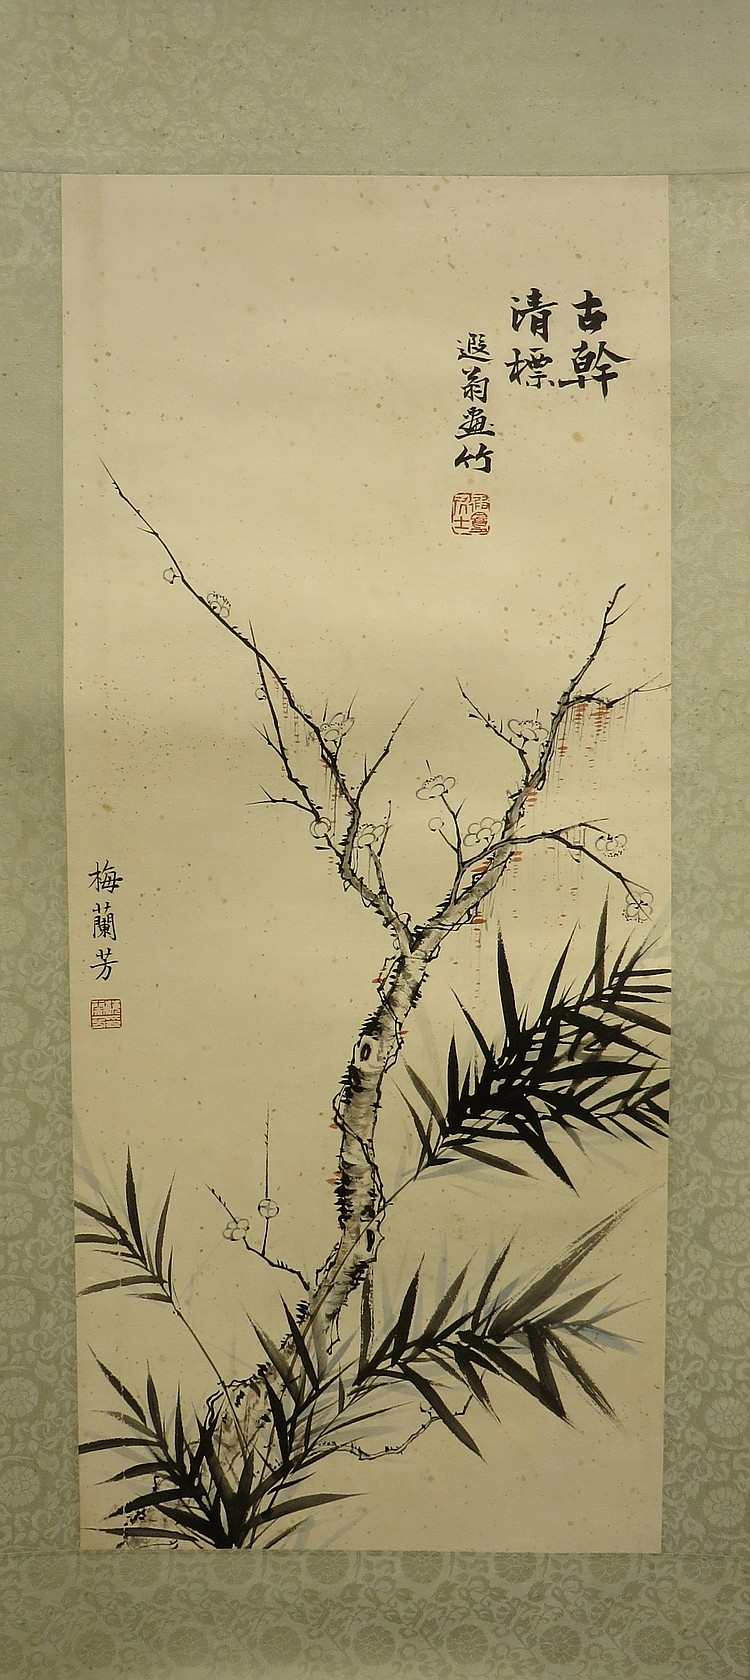 BLOSSOMING BRANCH SIGNED LAN FANG MEI (1894-1961)